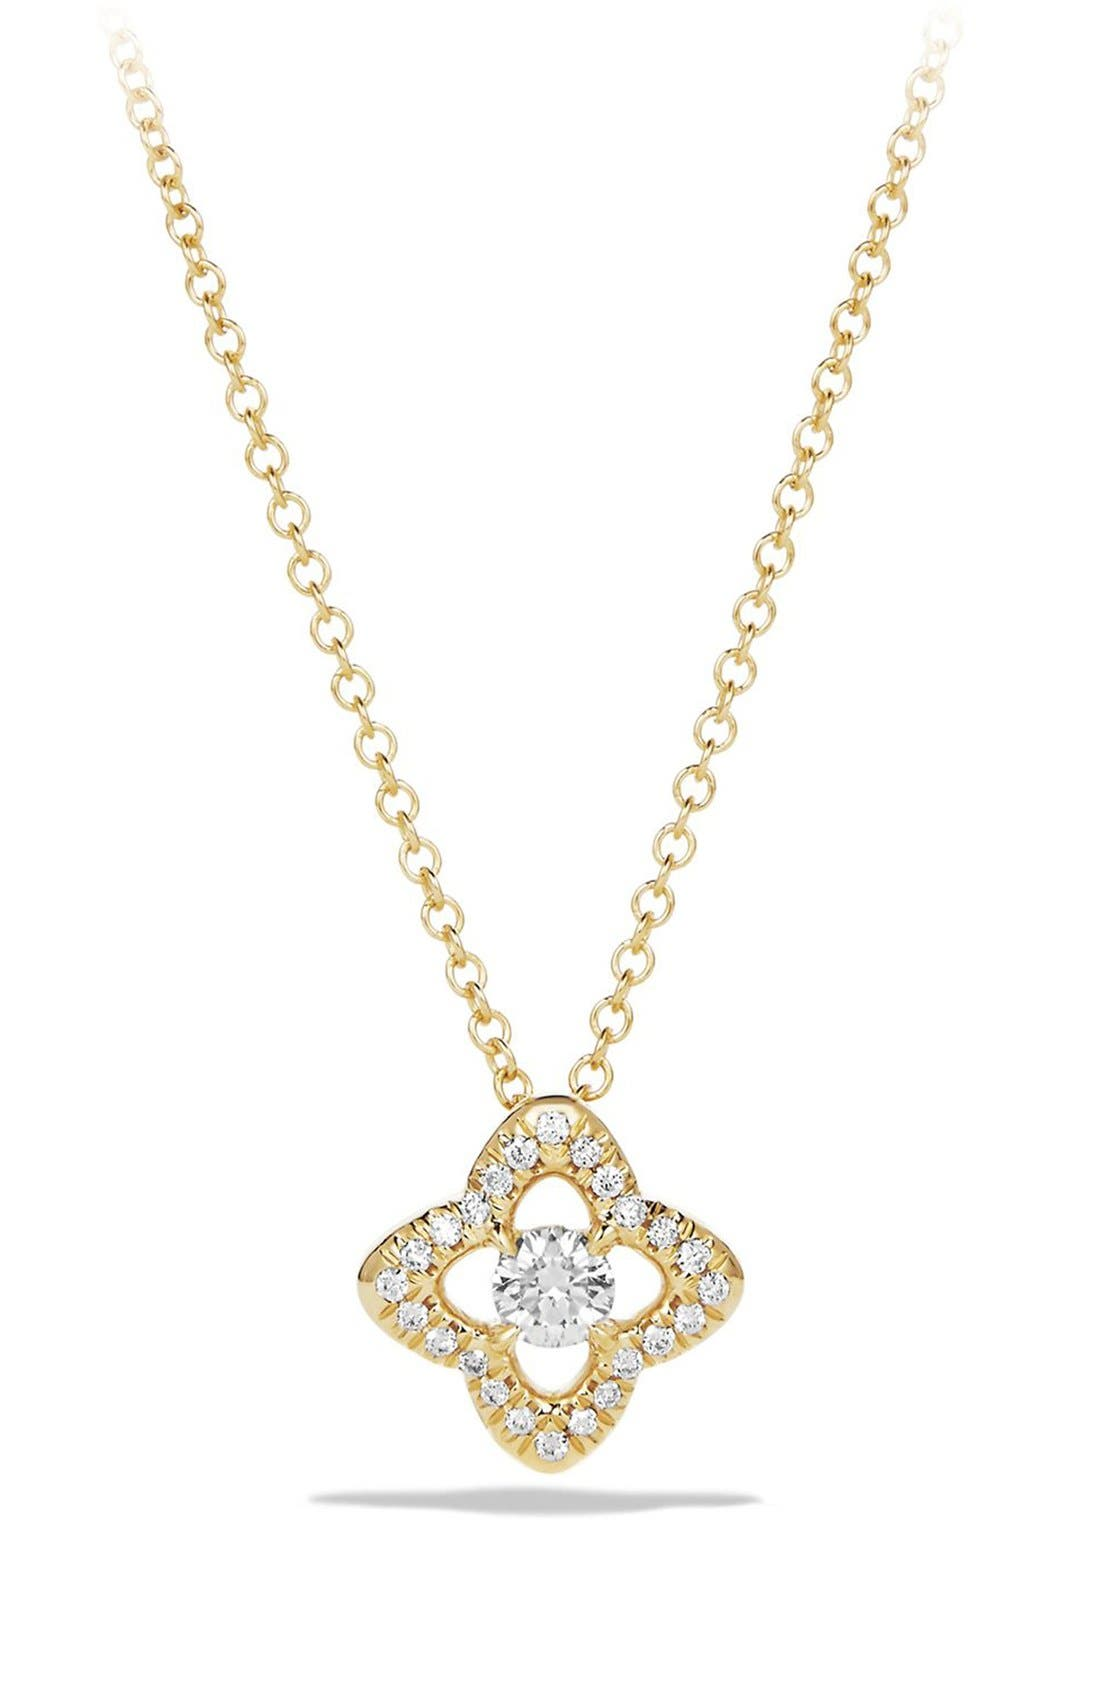 Main Image - David Yurman 'Venetian Quatrefoil' Necklace with Diamonds in Gold